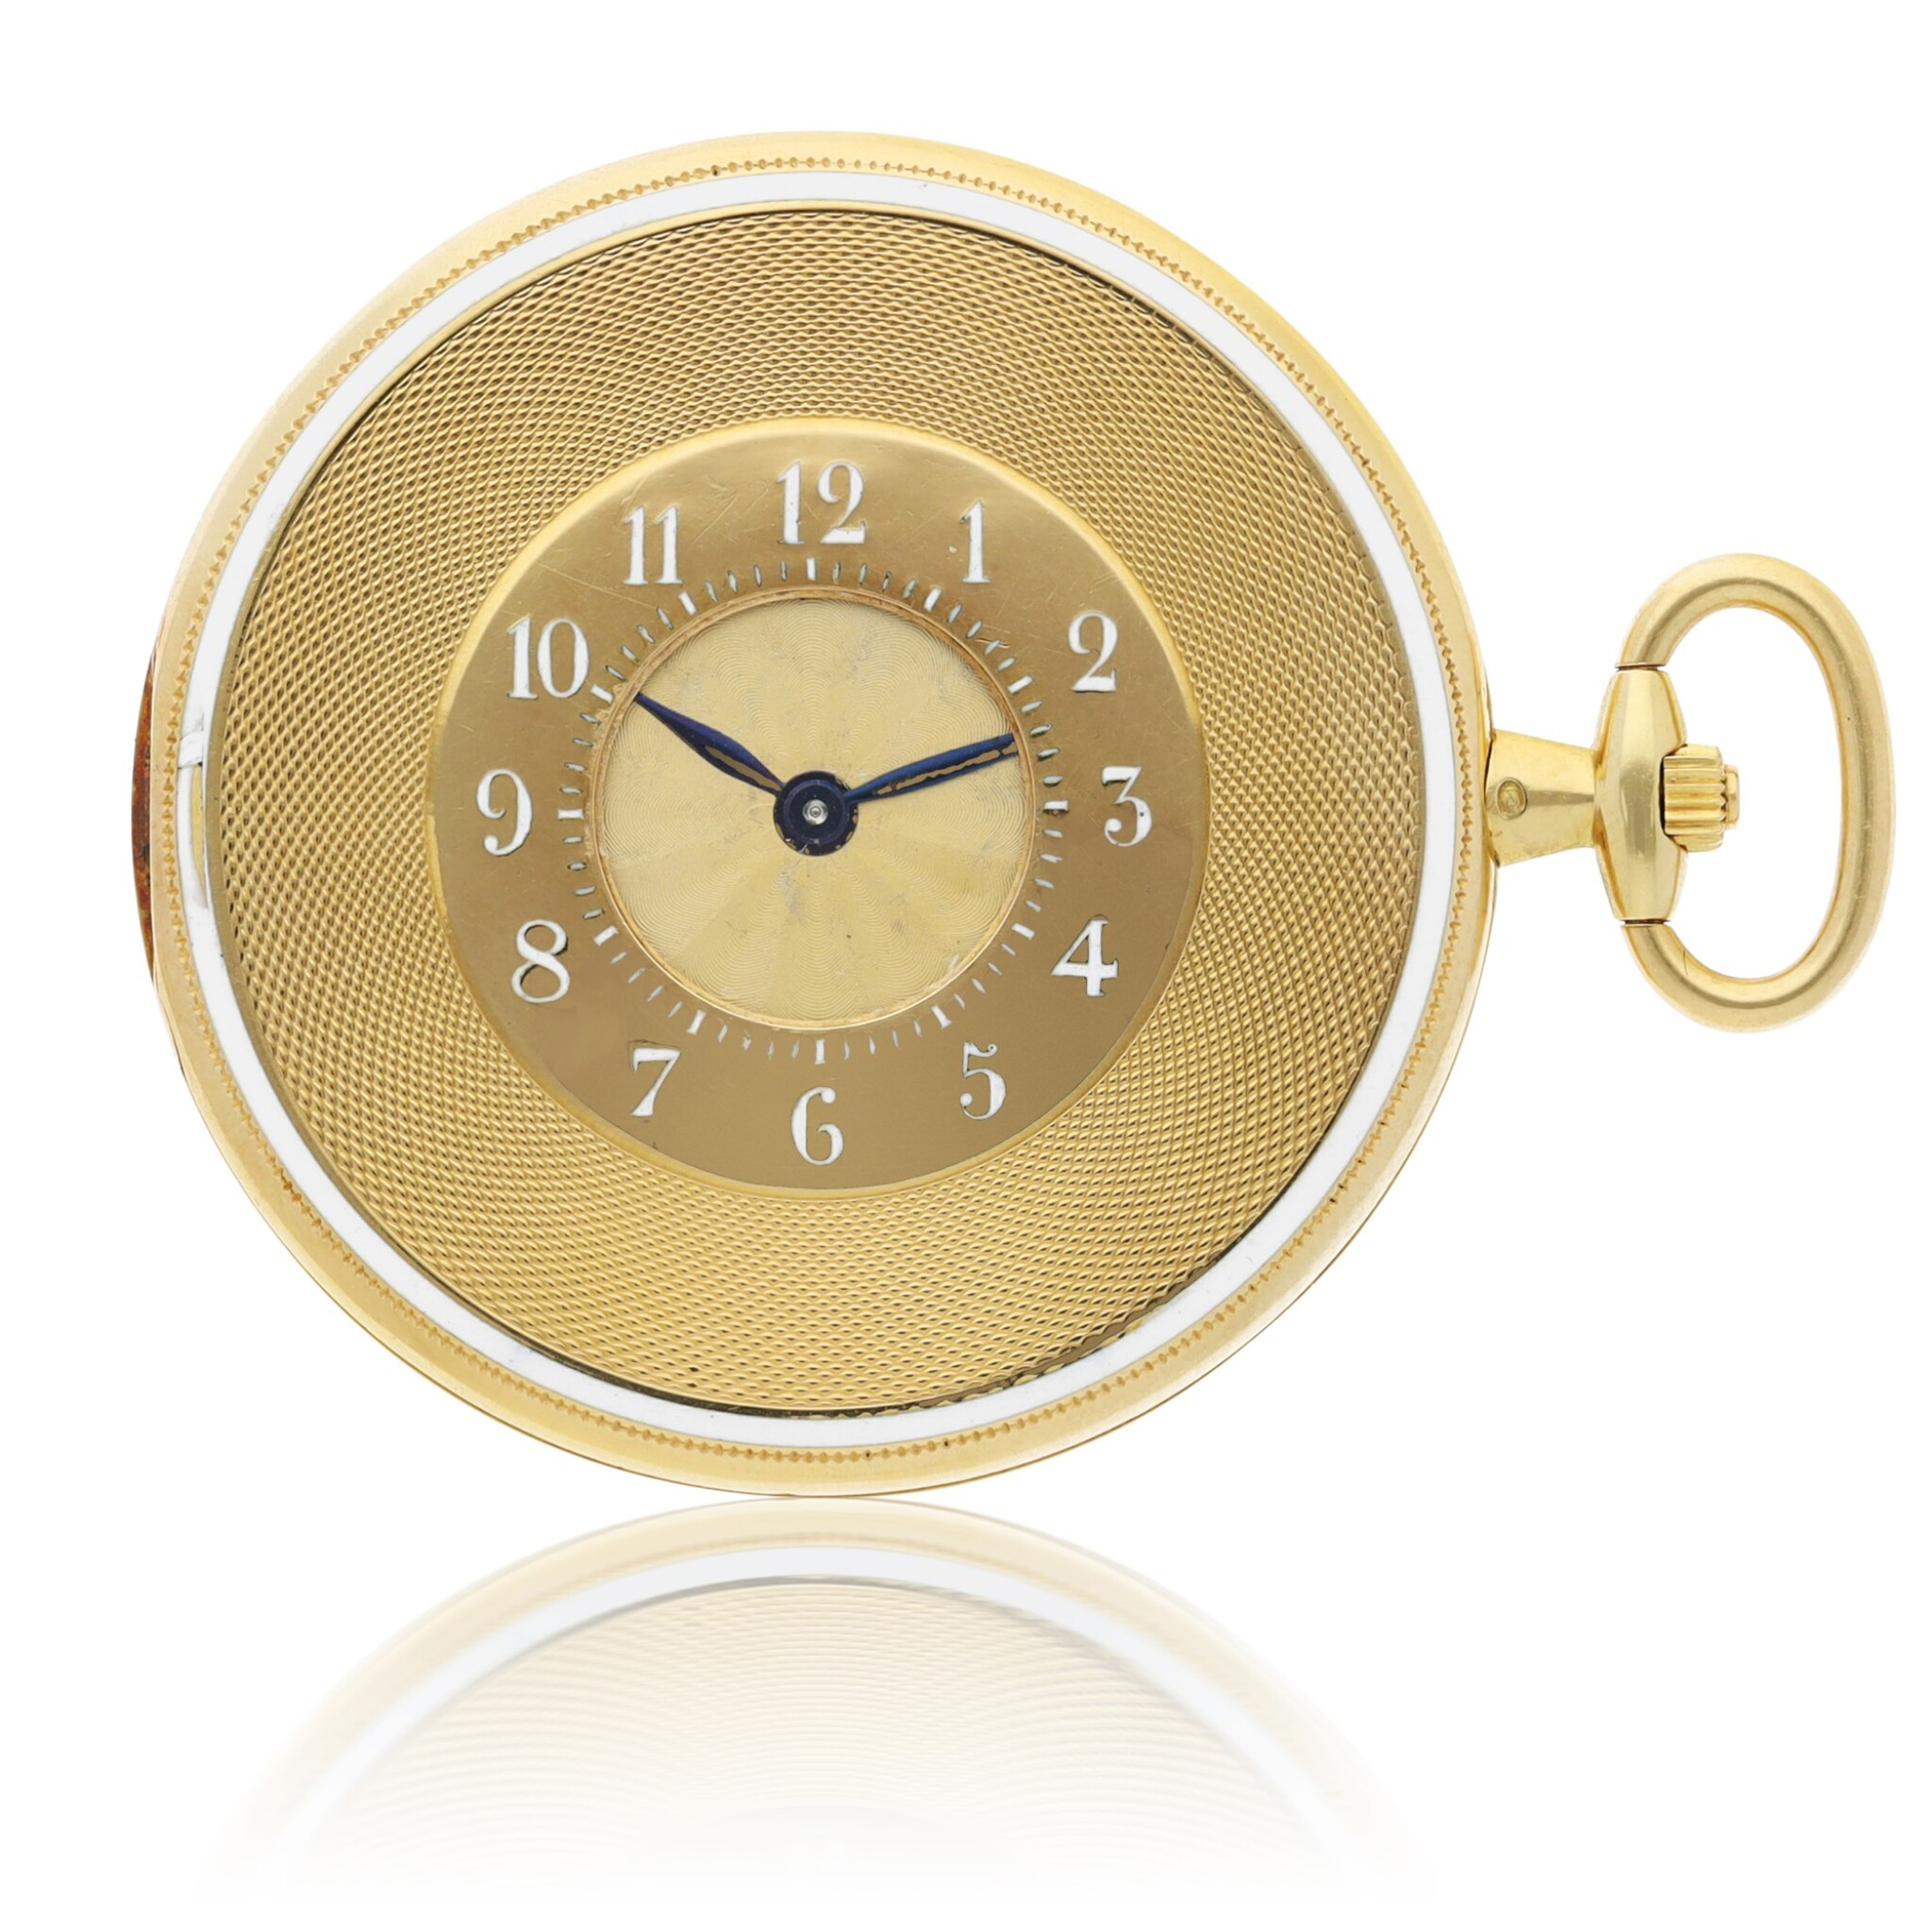 View full screen - View 1 of Lot 34. CARTIER |  A YELLOW GOLD AND ENAMEL DEMI-HUNTING CASED WATCH, CIRCA 1920.